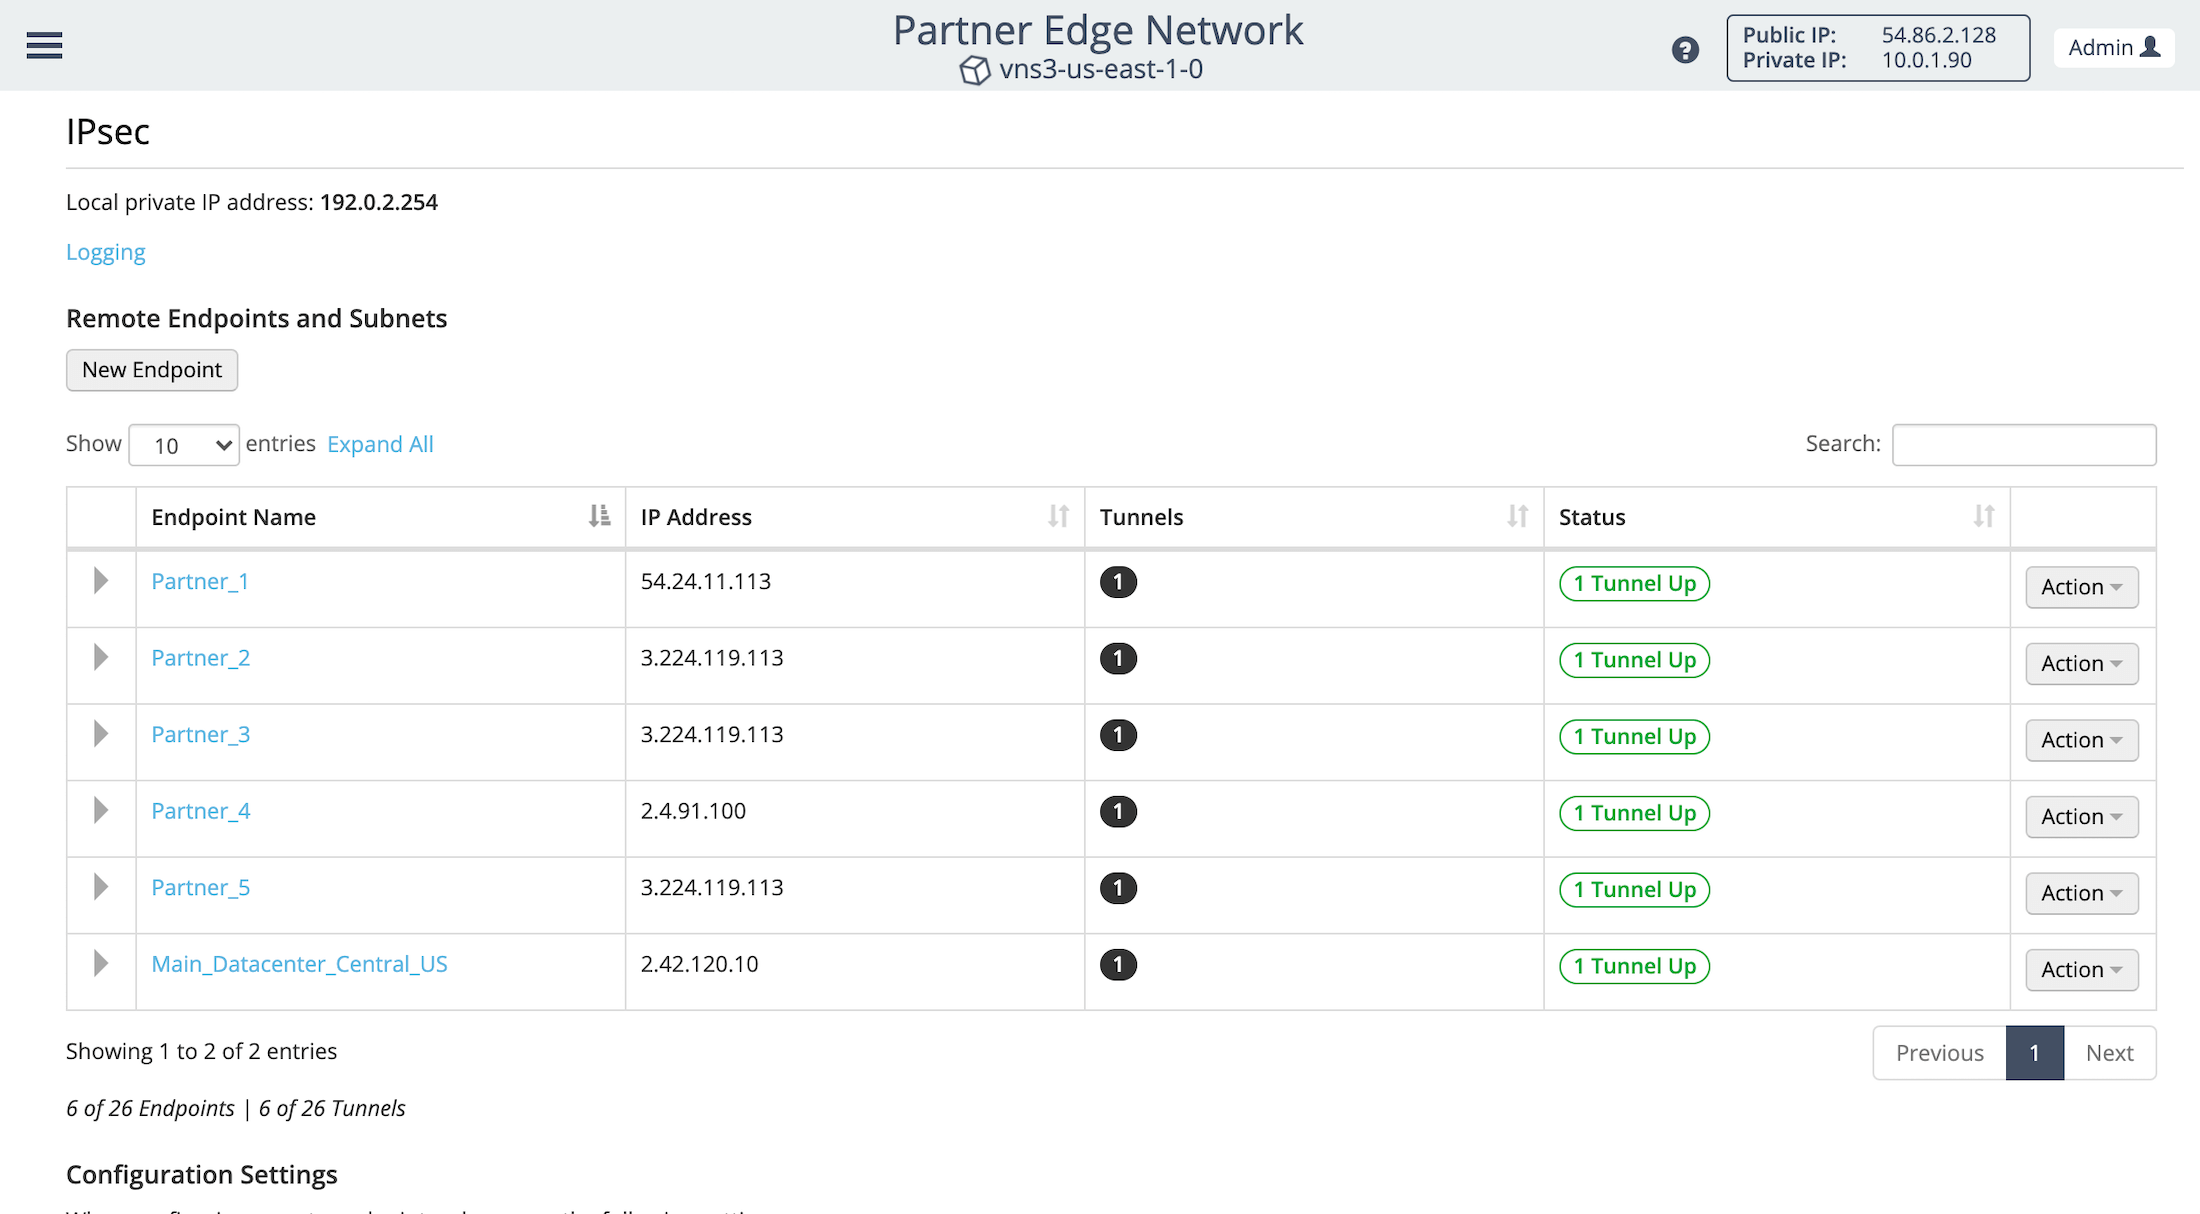 VNS3 Partner Edge